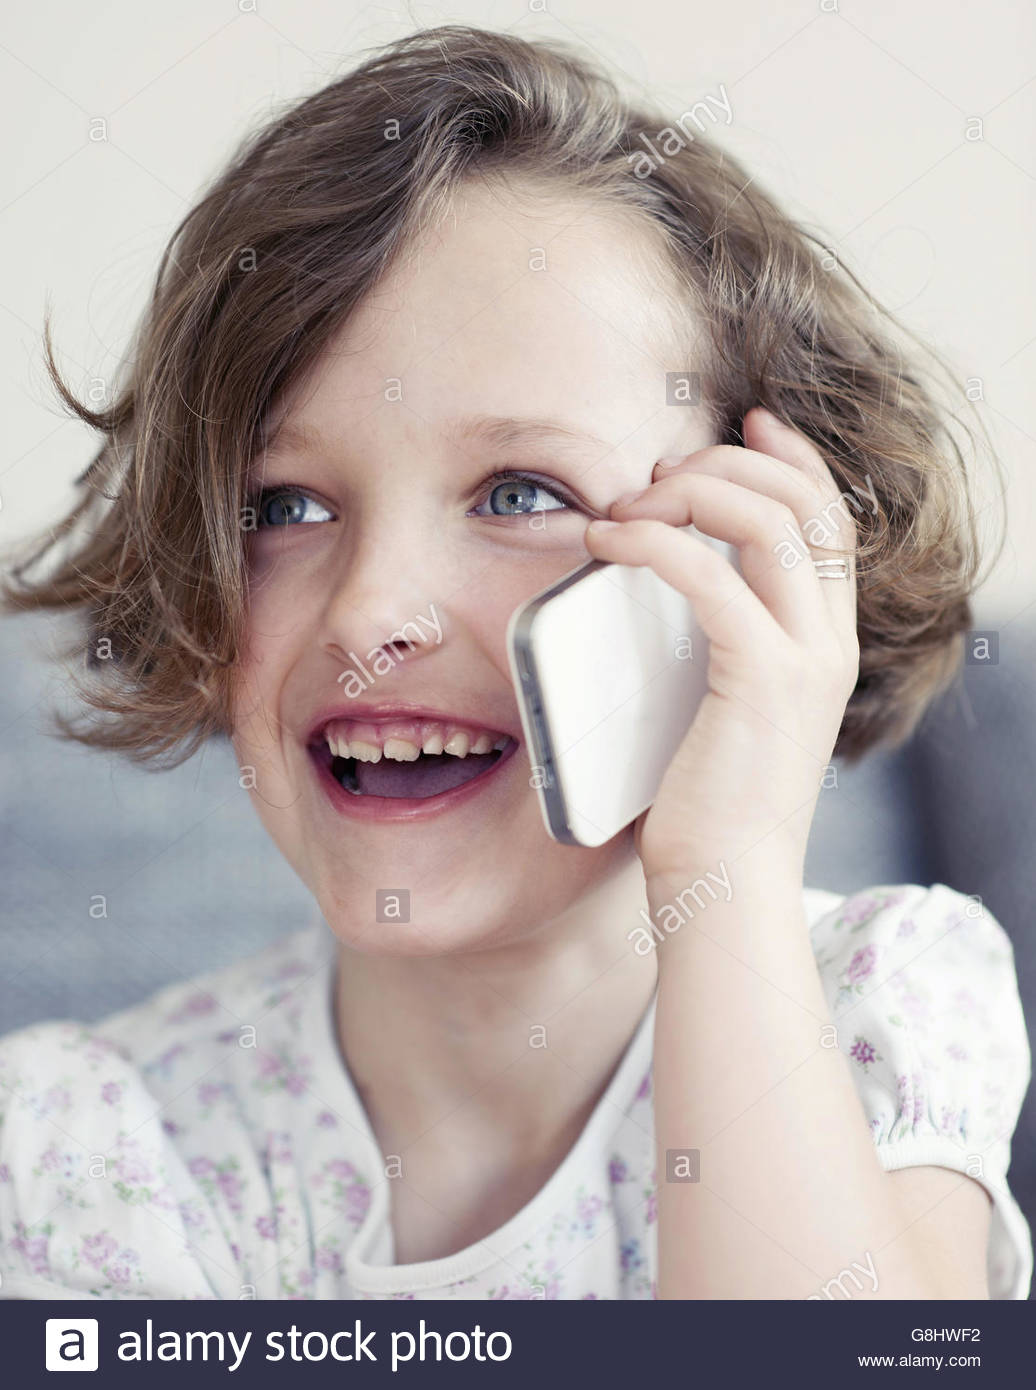 Young girl using cellphone, smiling - Stock Image